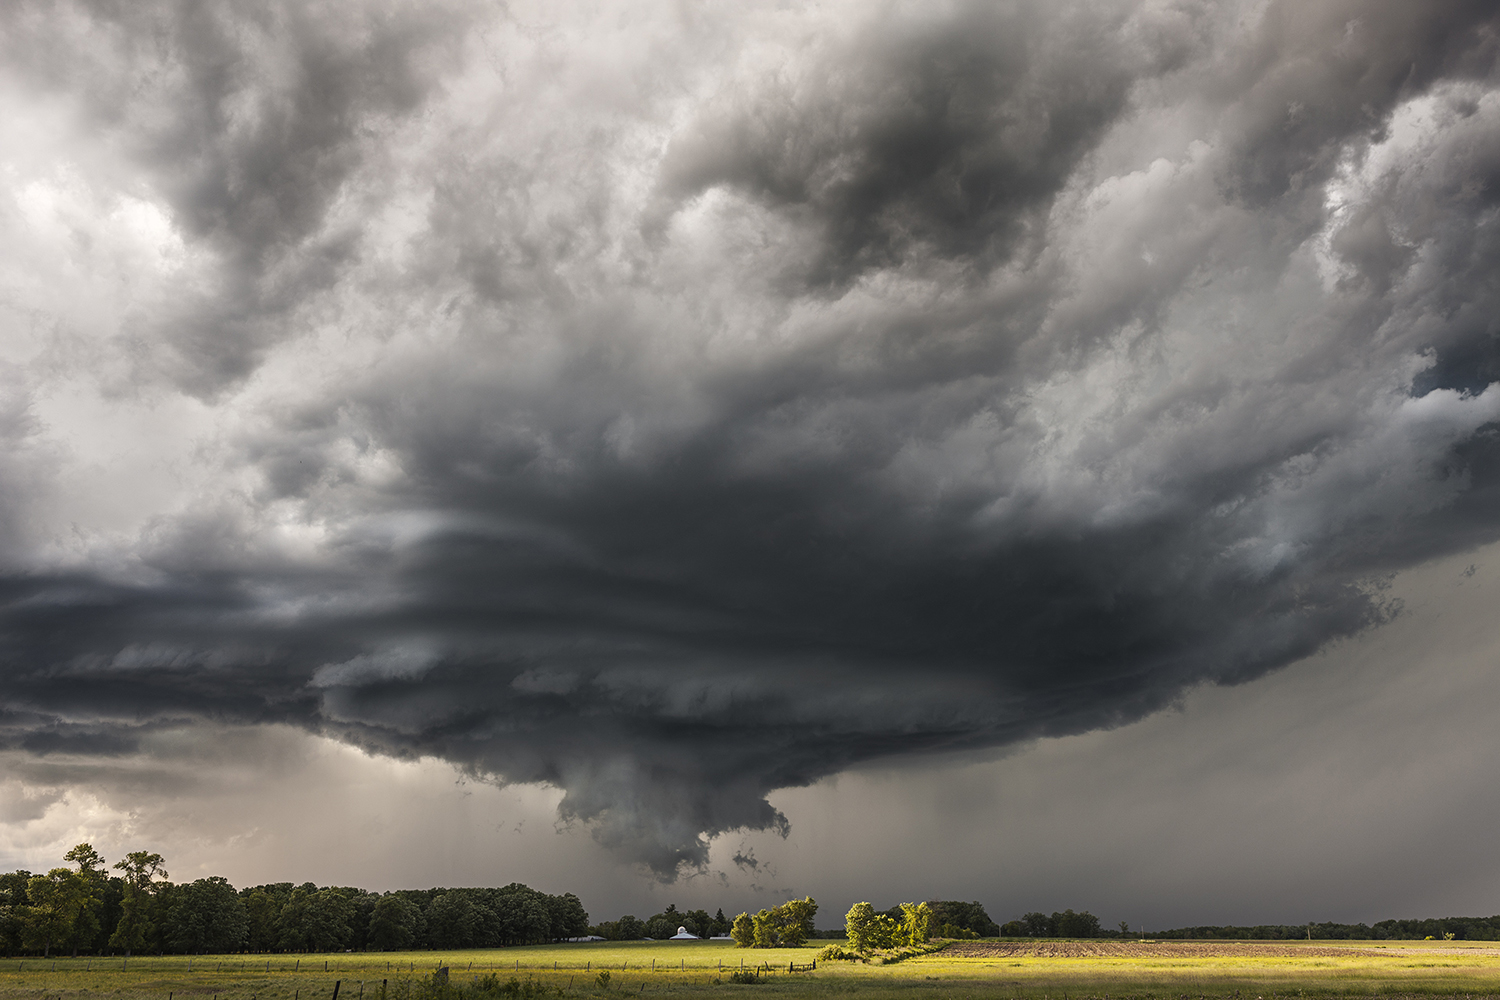 Supercell in Minnesota, Near Browerville, MN - The Big Cloud